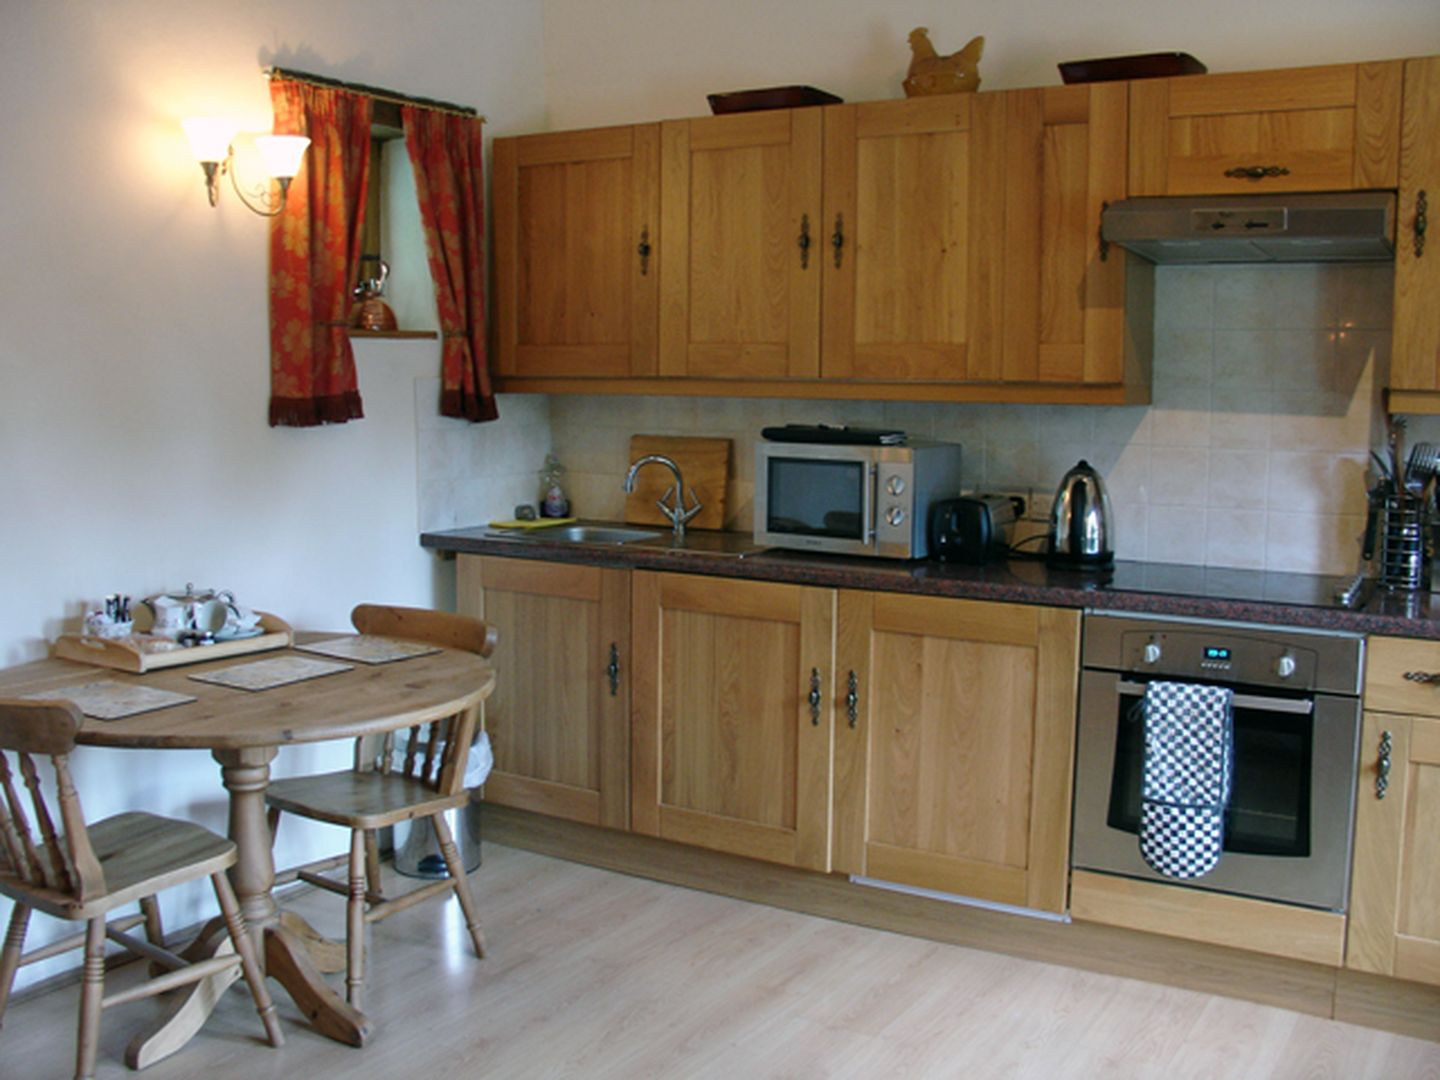 Miners Dry Holiday Cottage Gulworthy Kitchen